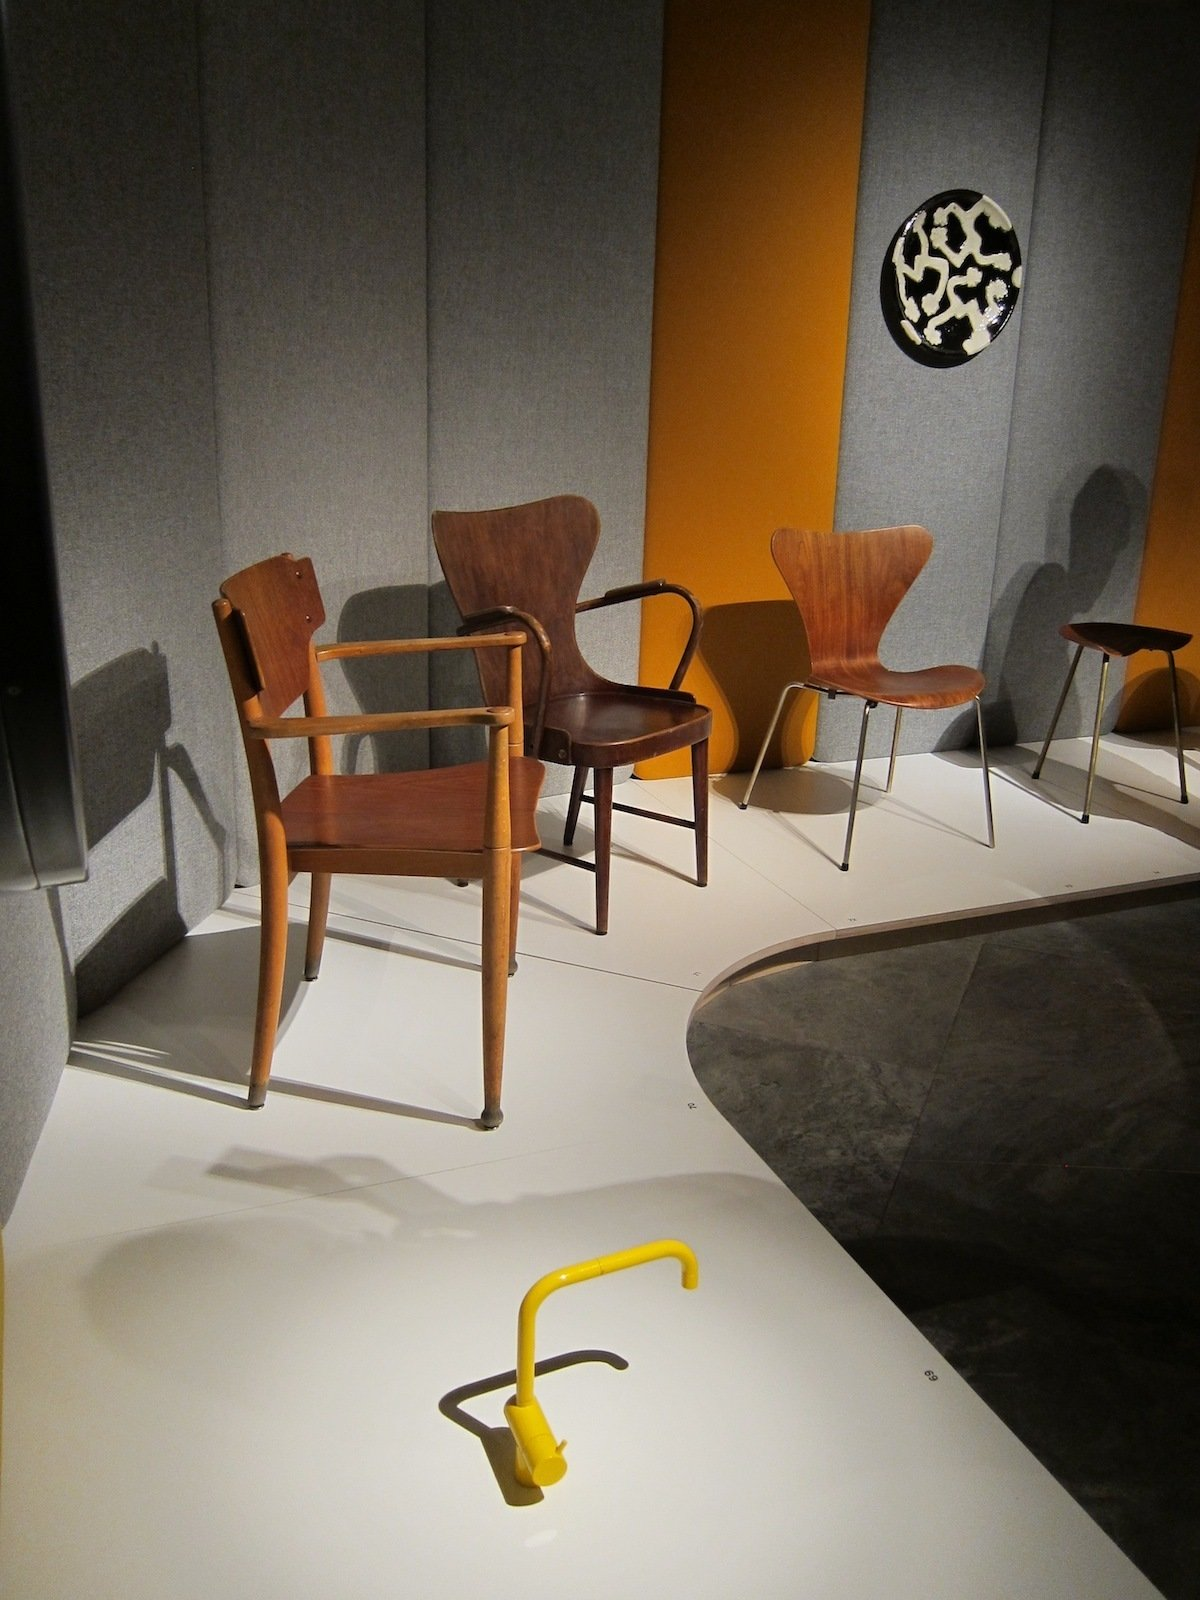 In one corner of the show, a bright yellow Vola faucet, designed by Arne Jacobsen and Teit Weylandt in 1969, holds court with a tribe of wooden chairs from the 1940s and 50s.  Photo 17 of 24 in A Cherner Chair Retrospective from Danish Design, Curated by Morrison